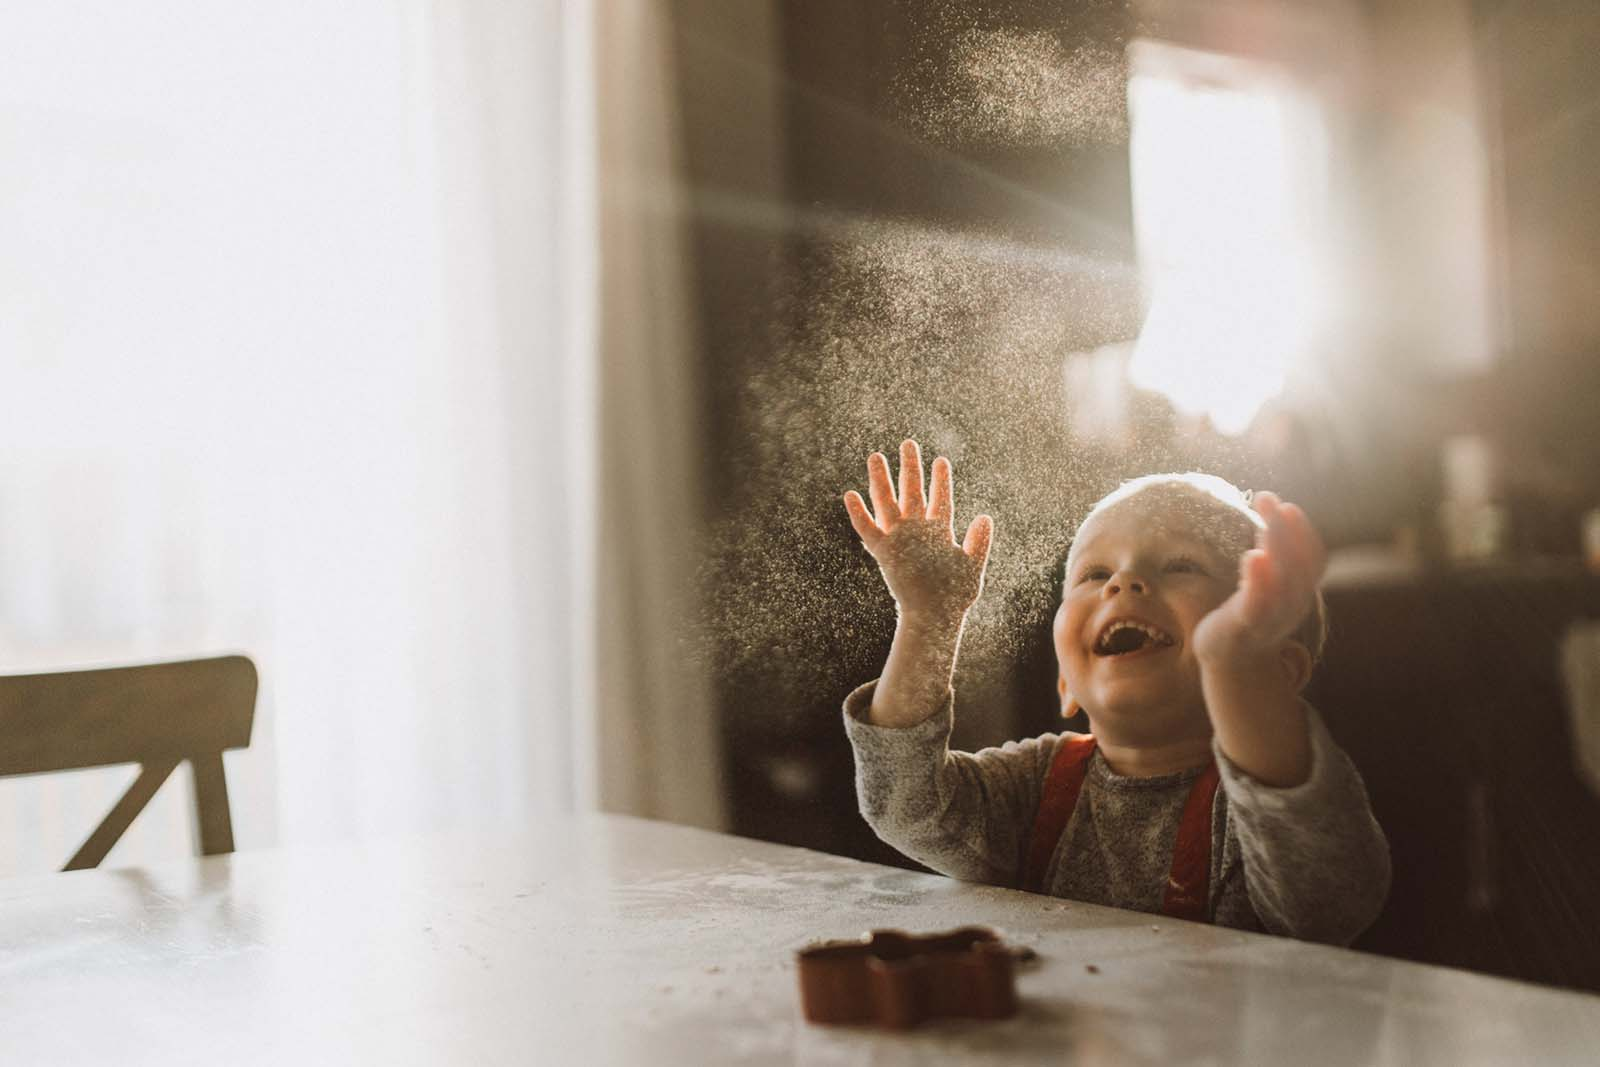 A joyful boy through a window. Finding balance with photography and motherhood